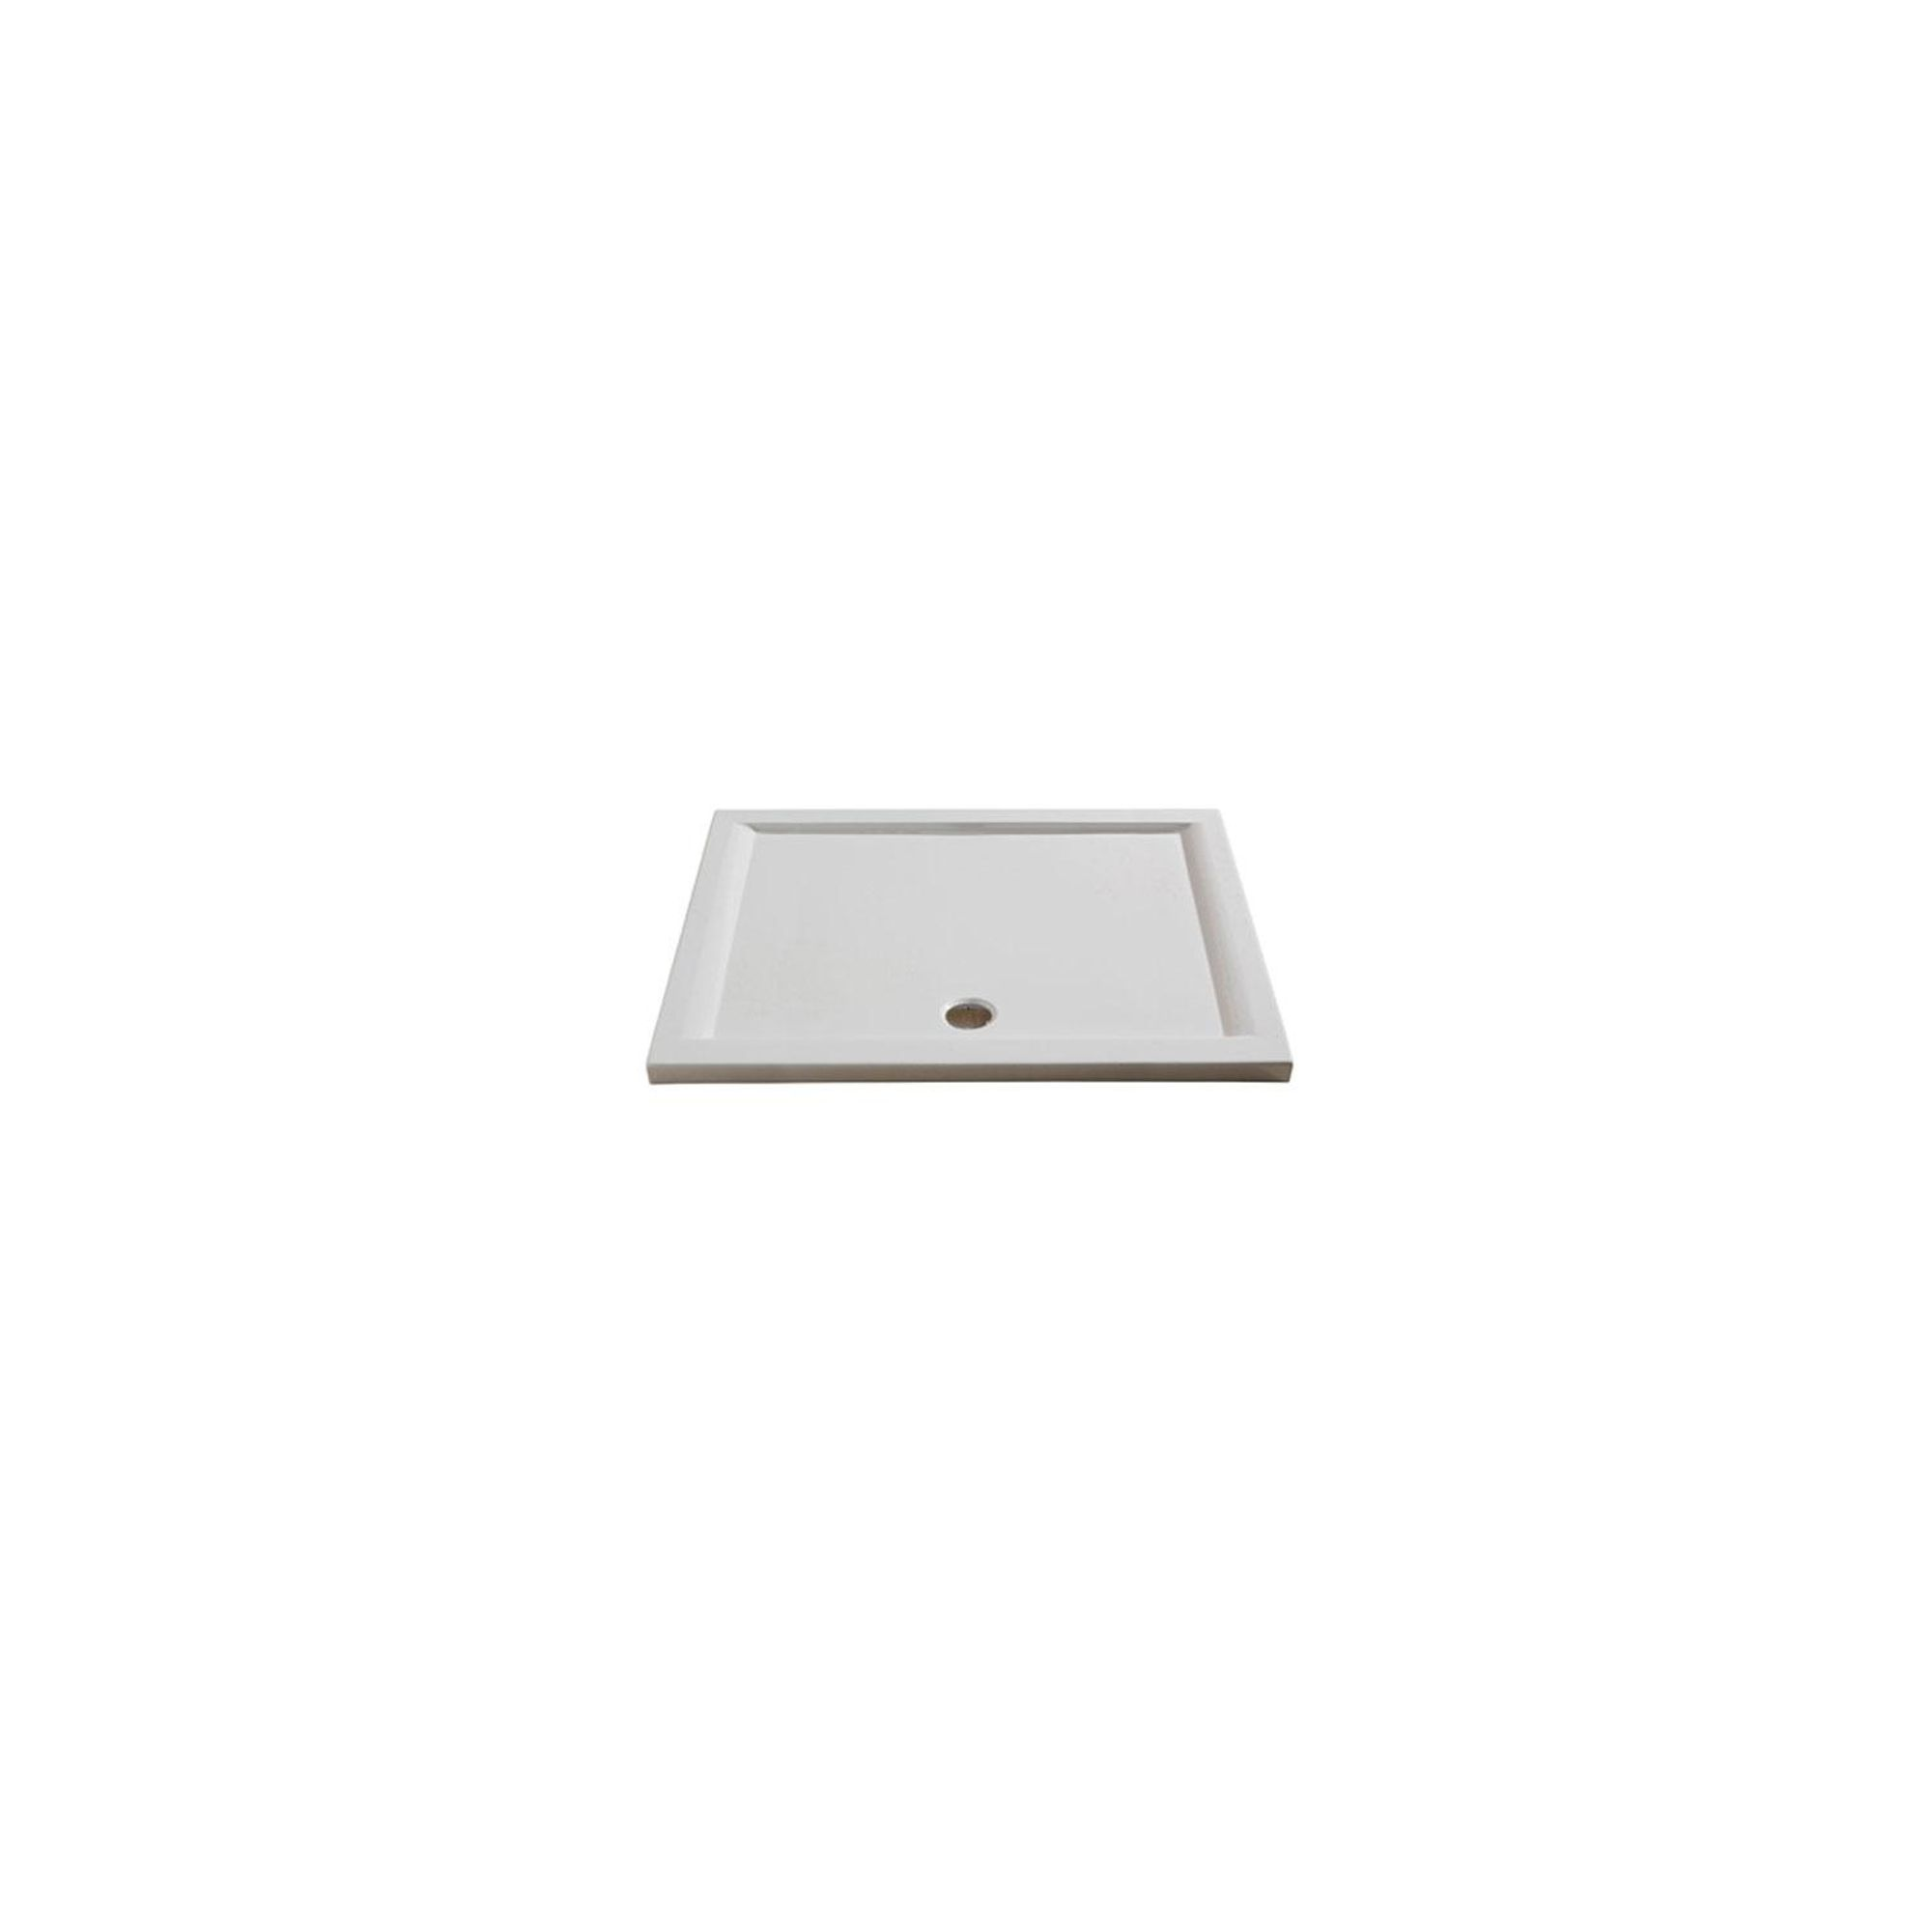 Merlyn Merlyte Low Profile Rectangular Shower Tray, 1700mm x 900mm at Tesco Direct